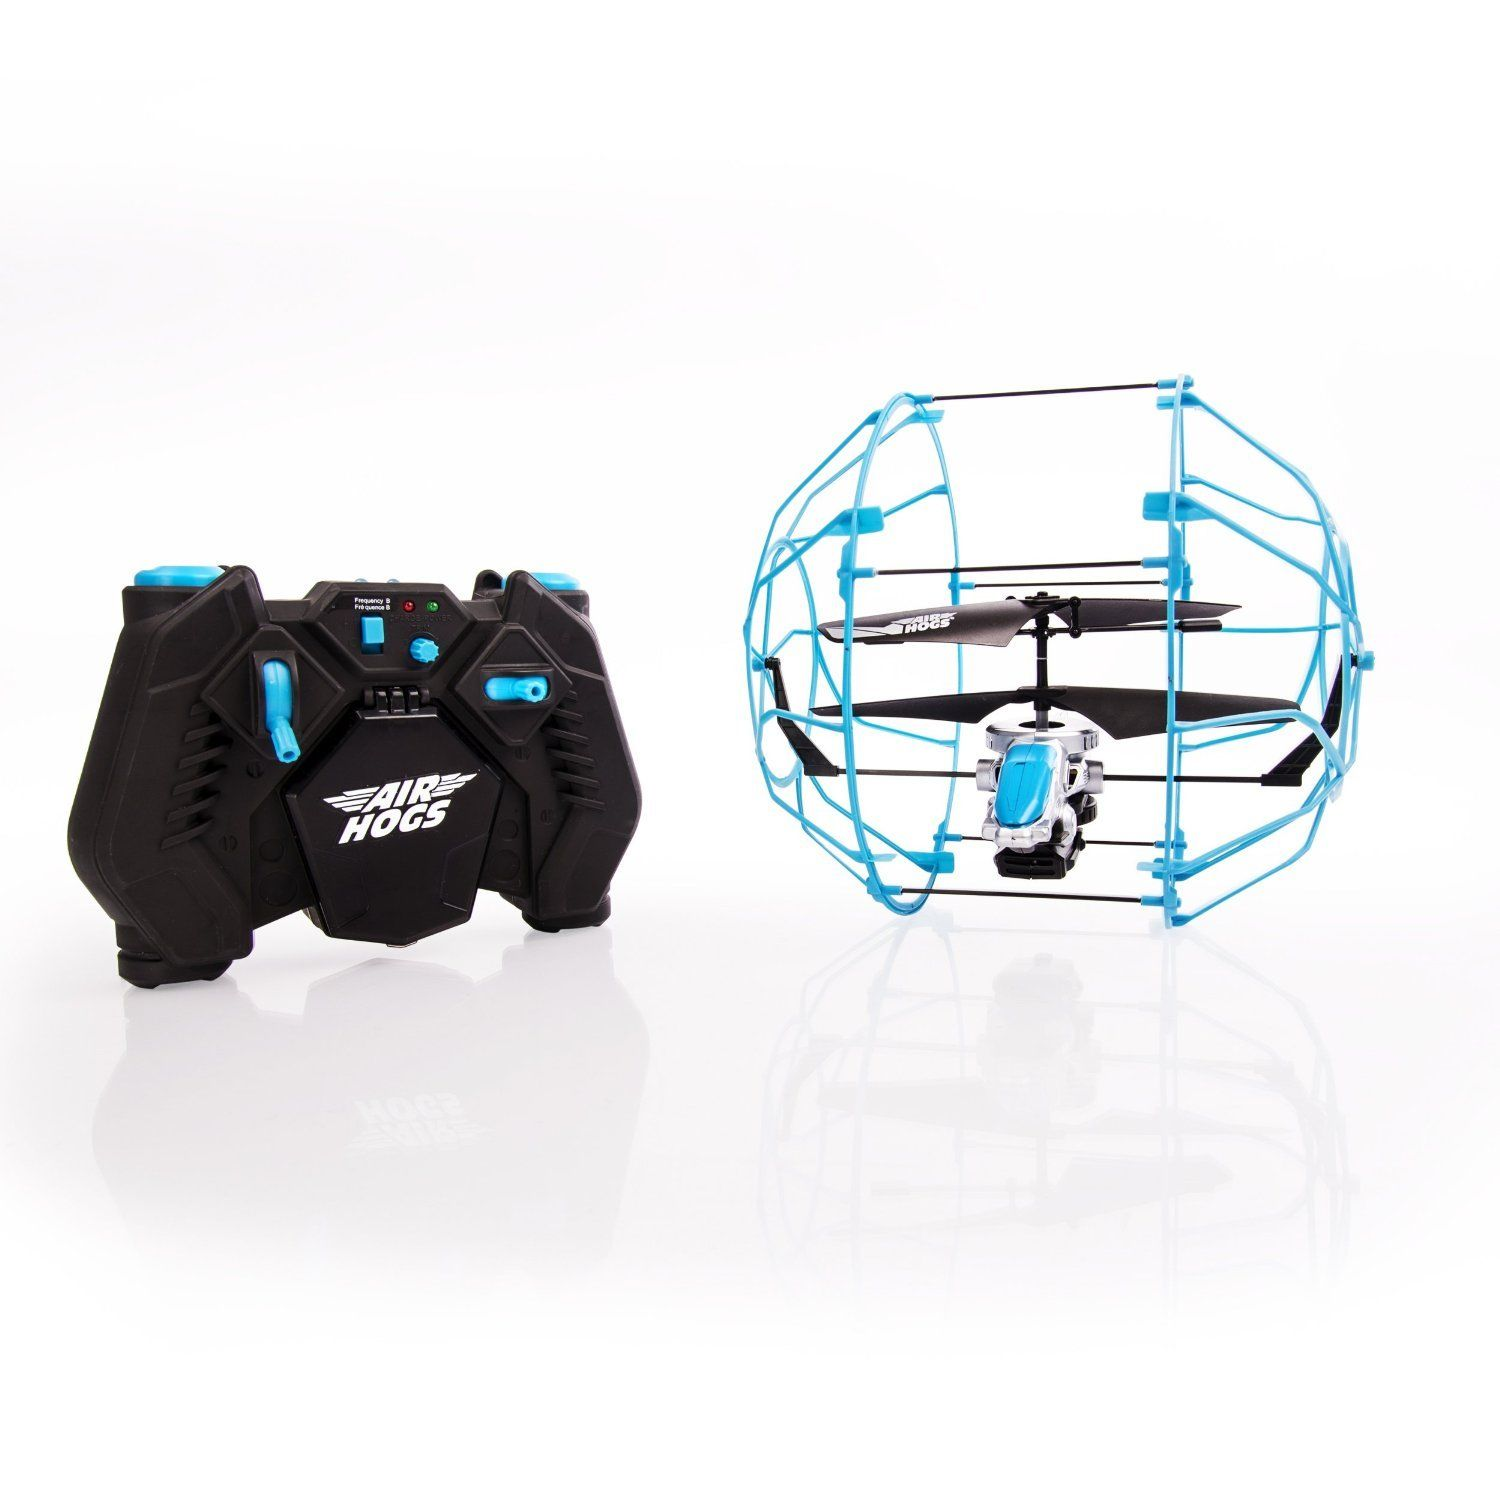 Walmart Helicopter Toys For Boys : Air hogs rc roller copter blue black